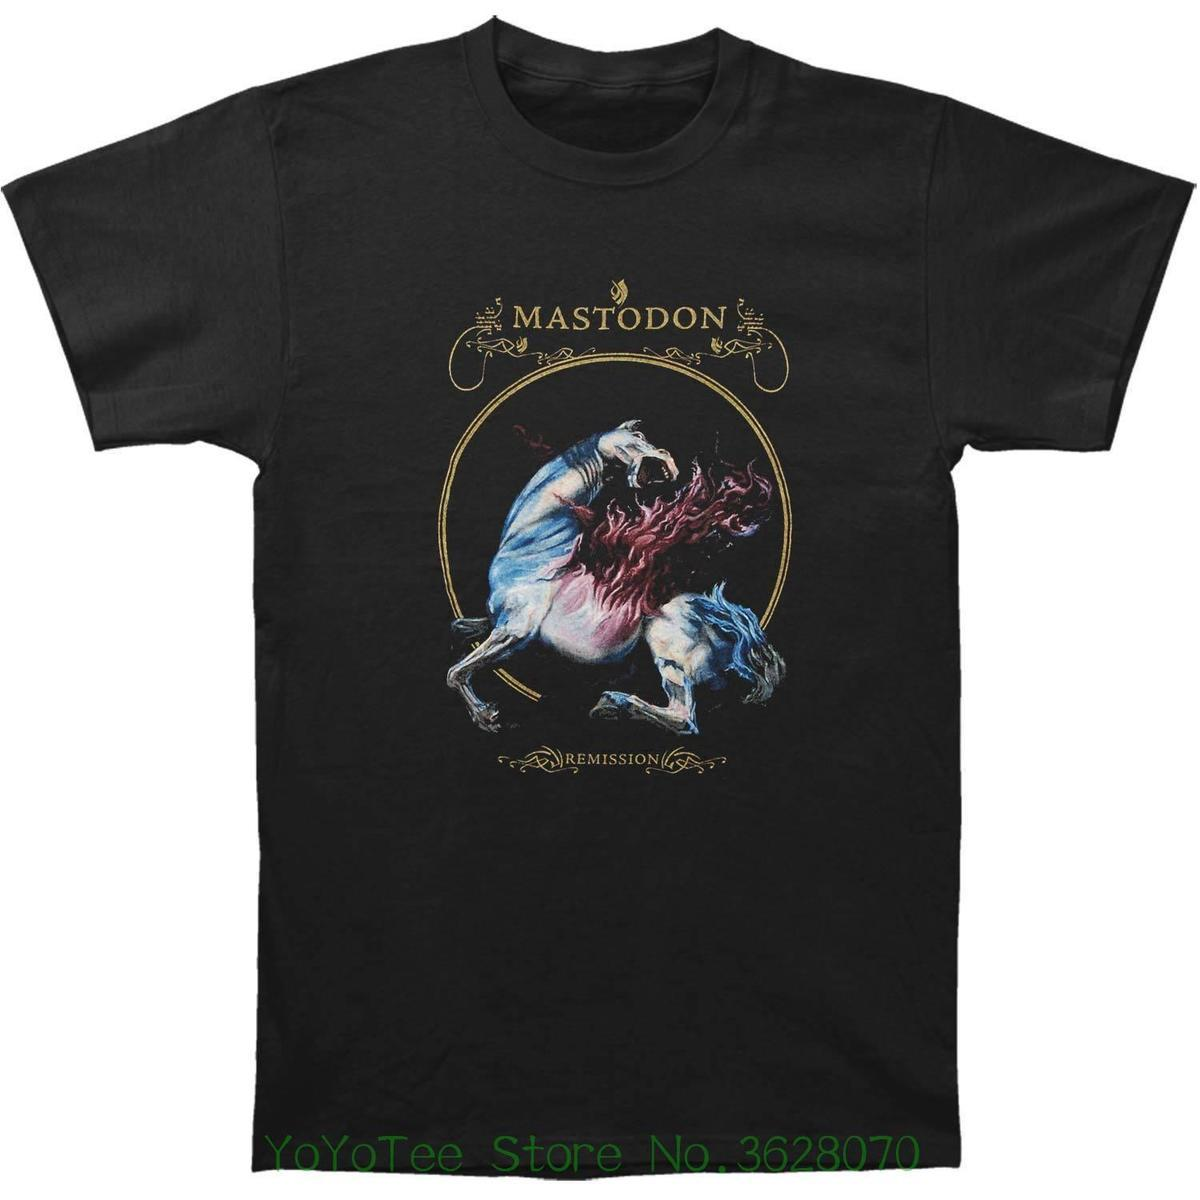 Em torno do pescoço Pop adolescente Top Tee Mastodon Men '; S Remixion Black Camiseta Xx - Preto Grande